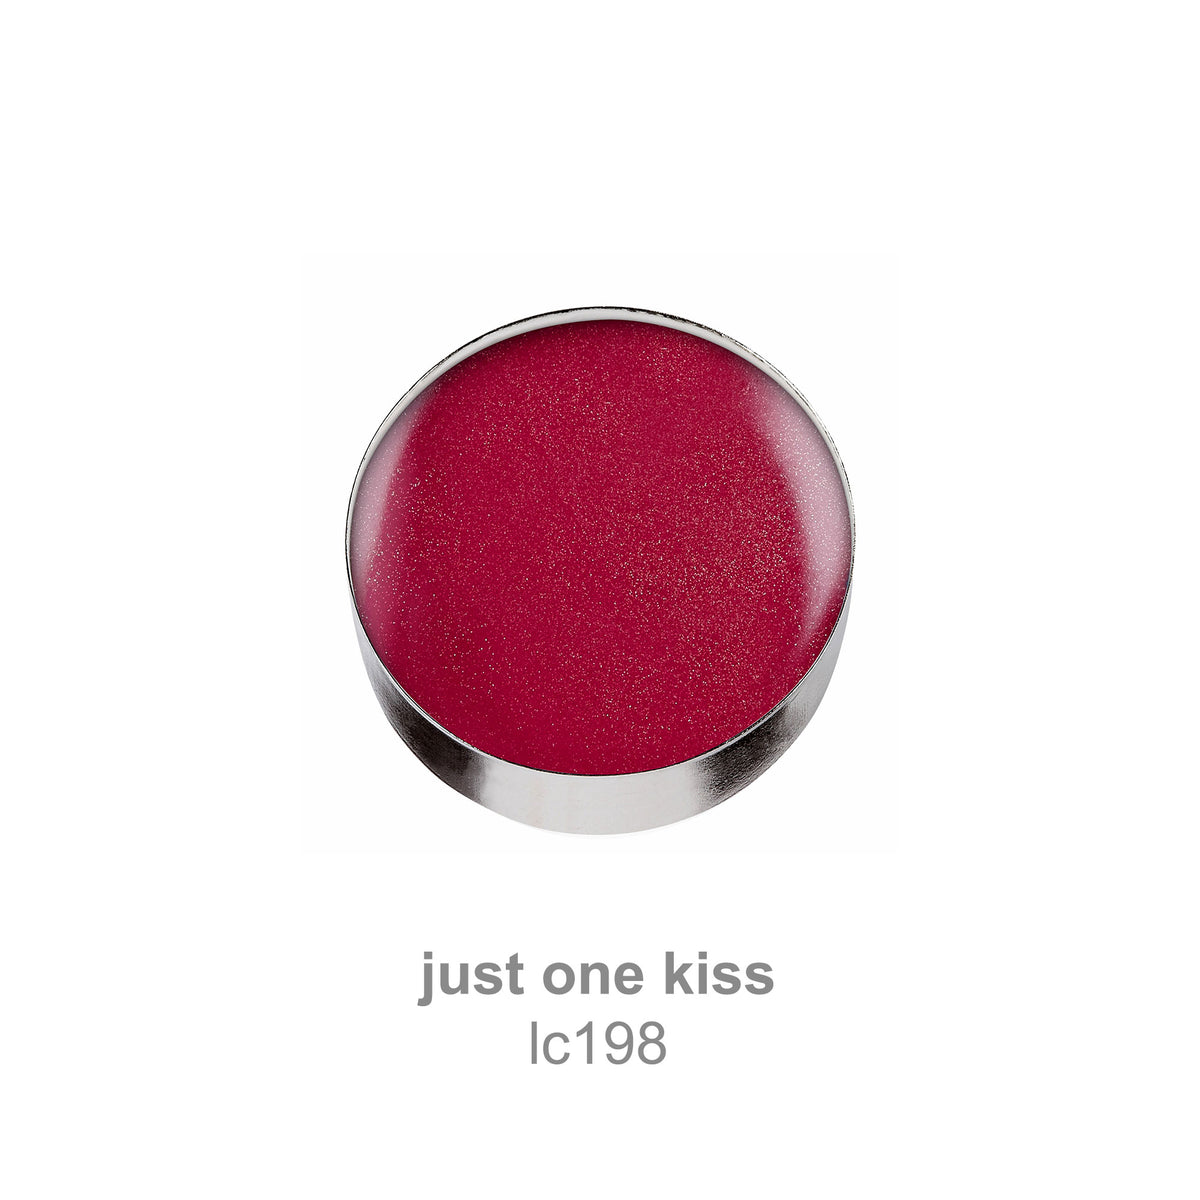 just one kiss (lc198)